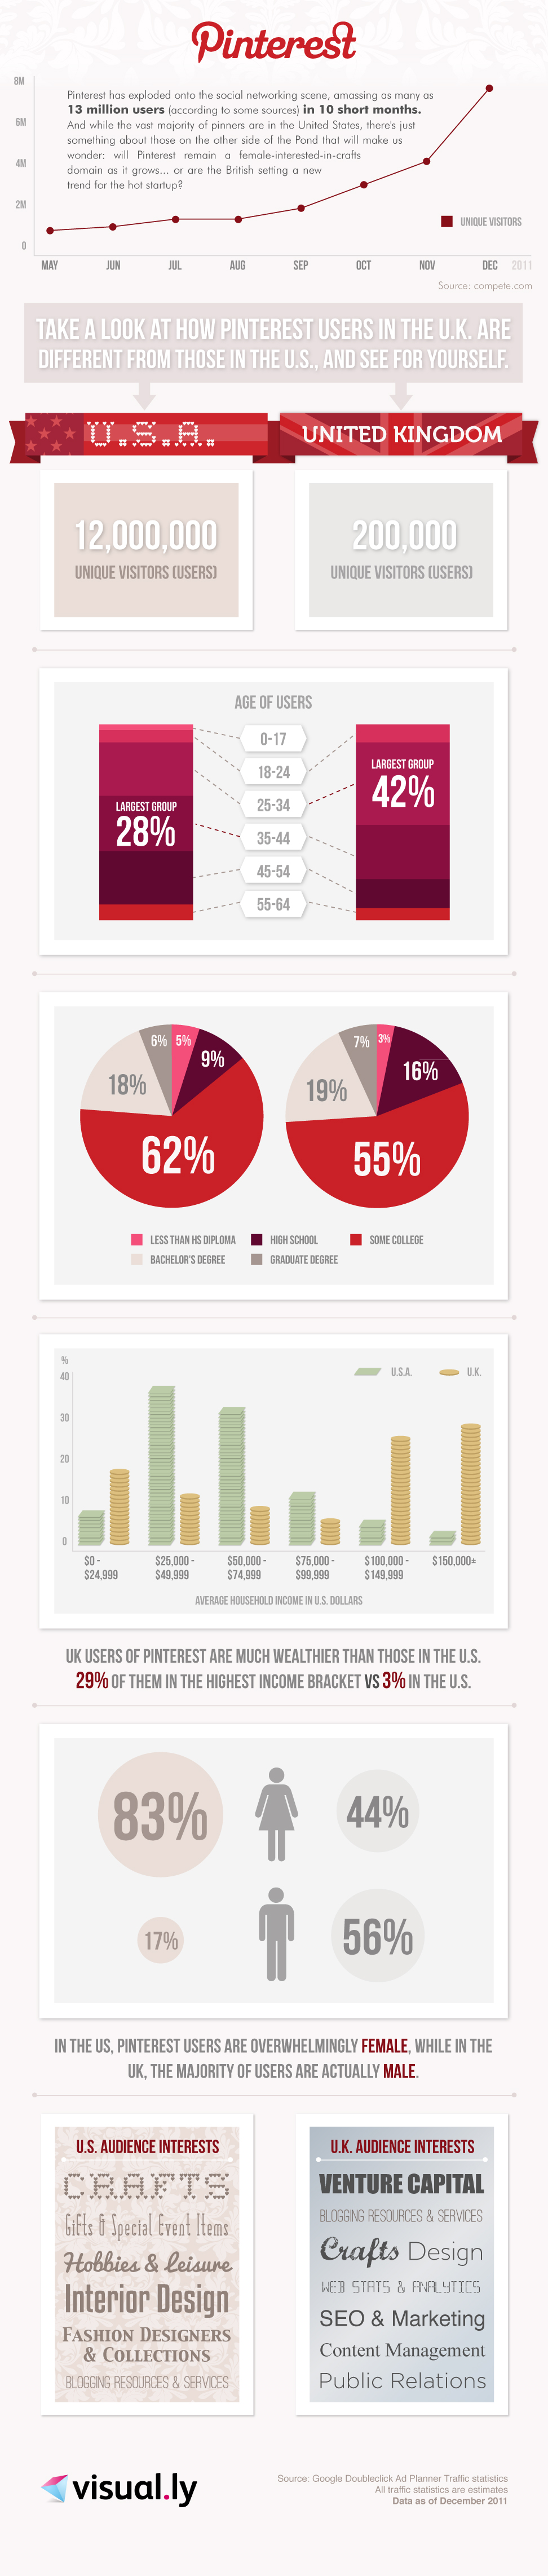 Pinterest-How-Do-US-And-Uk-Users-Compare-infographic